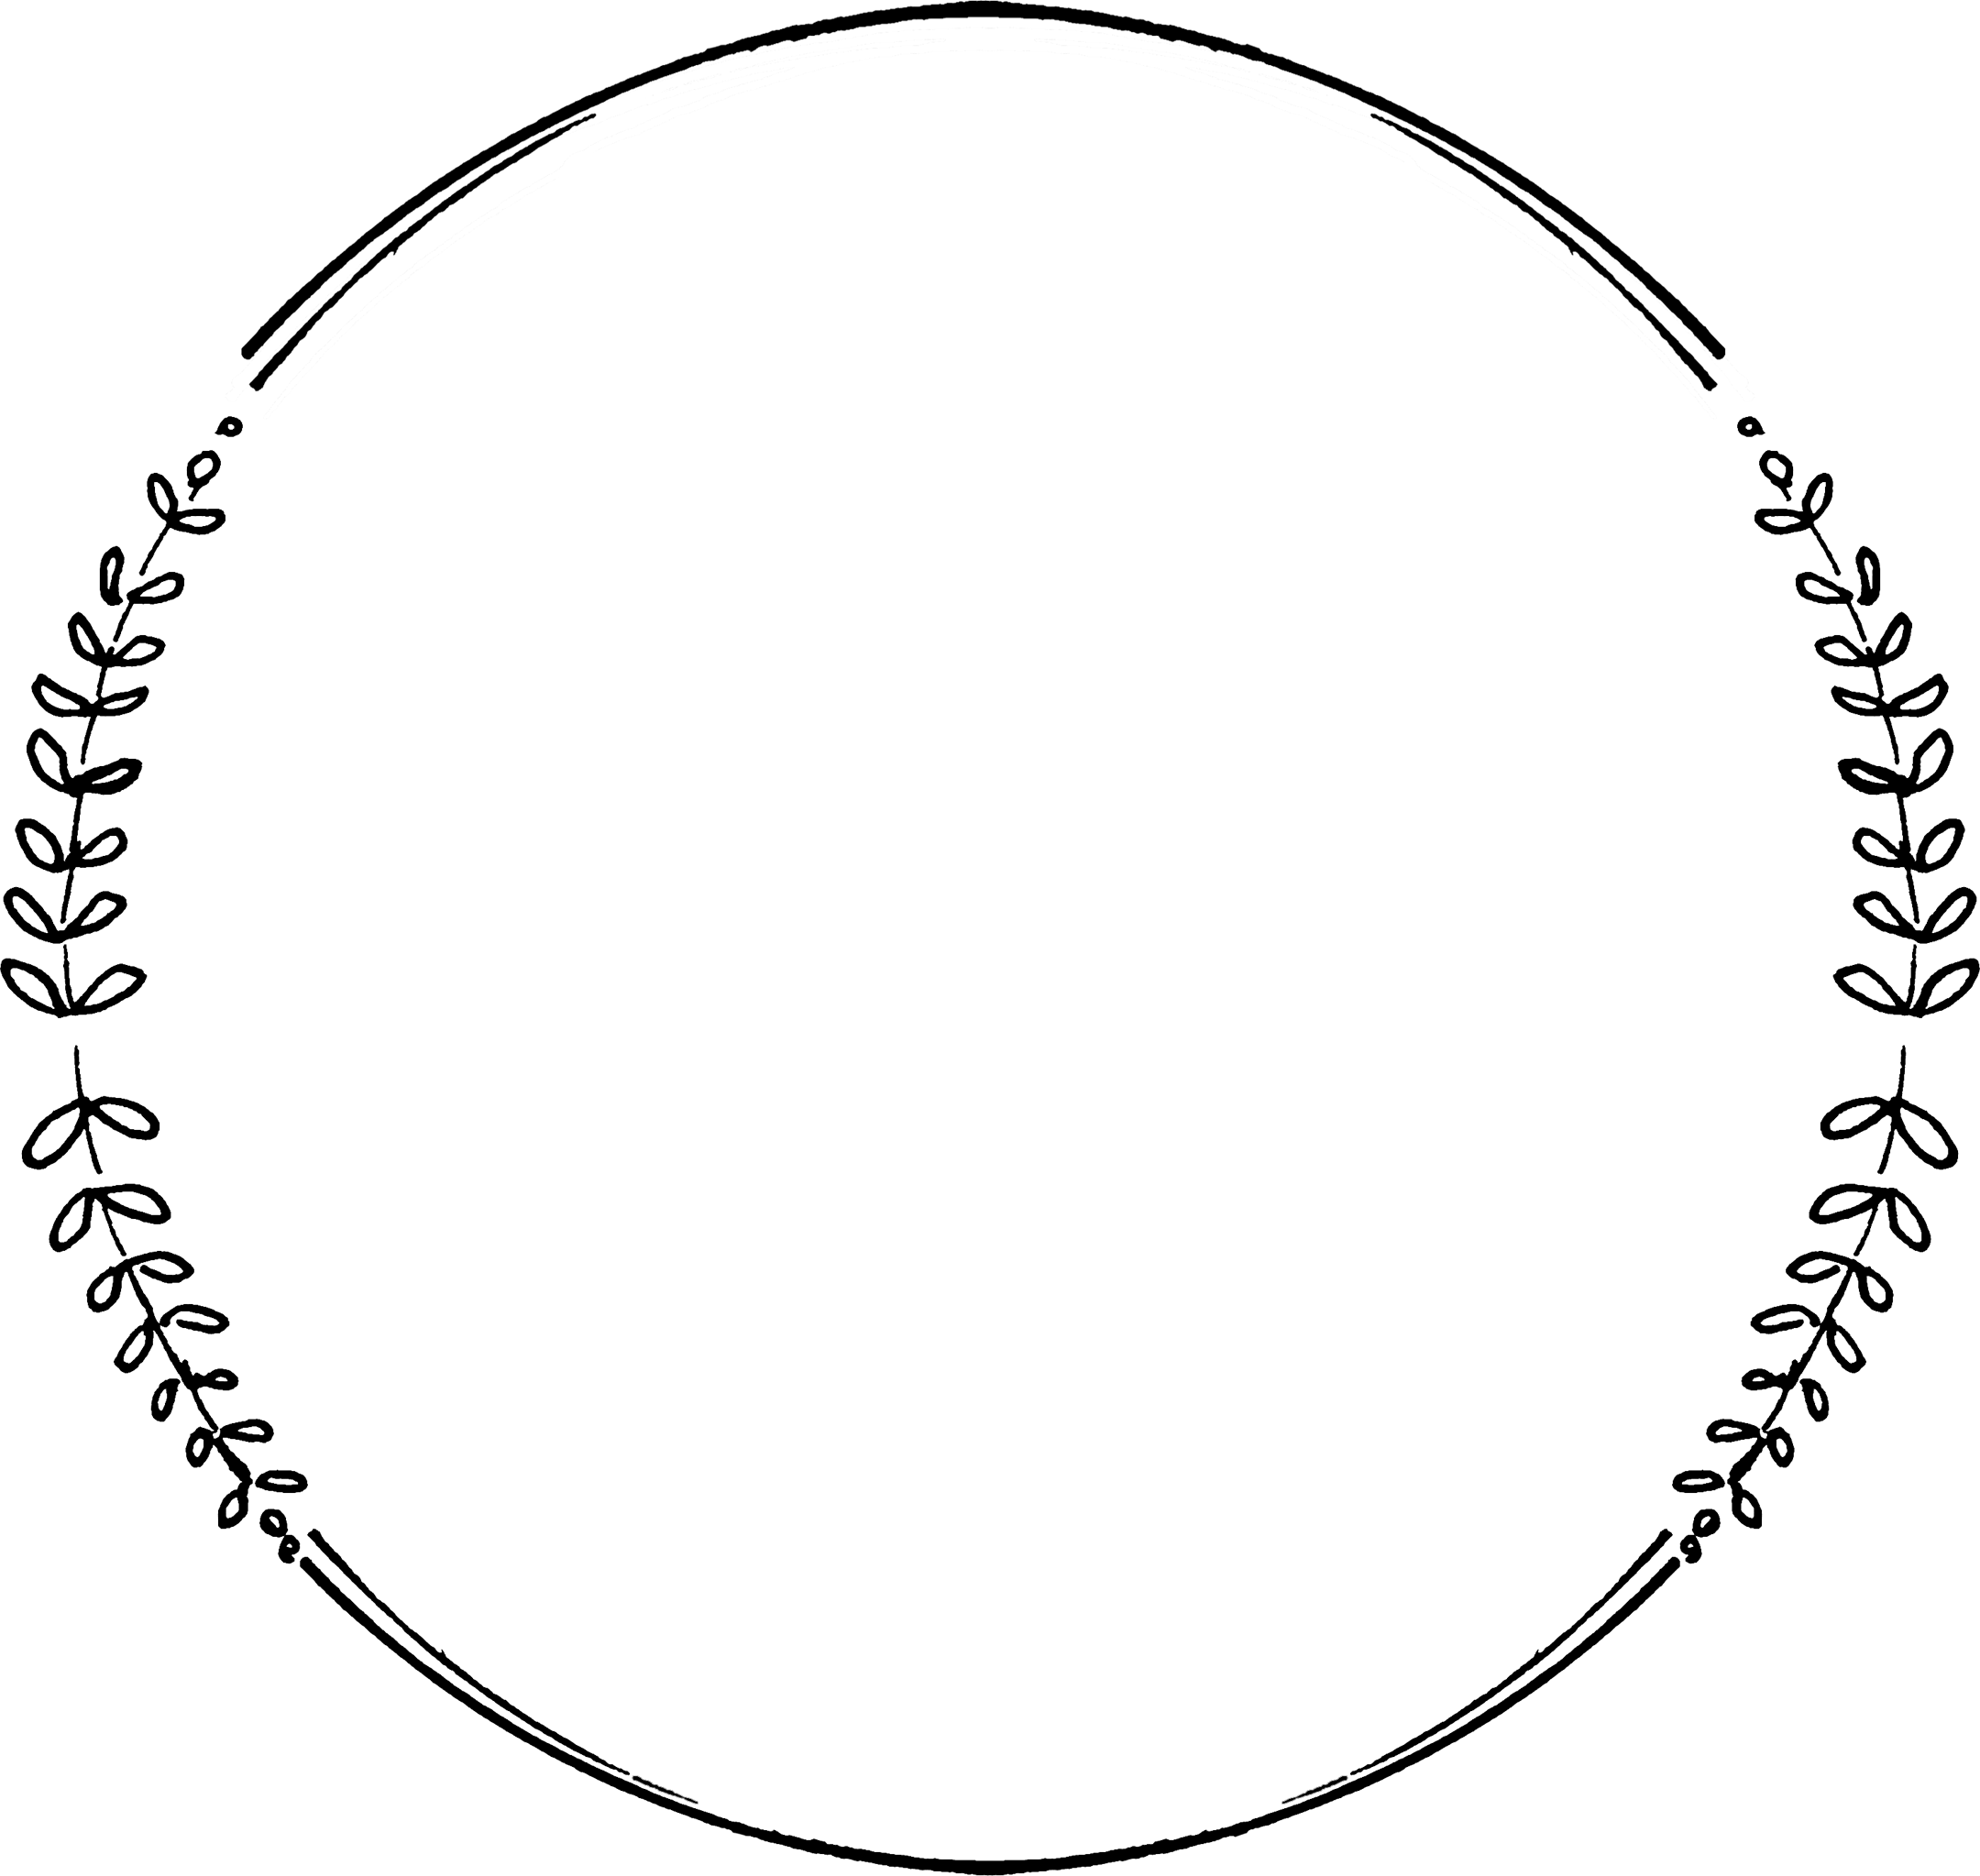 Circle wreath png. Ozn men pinterest wreaths